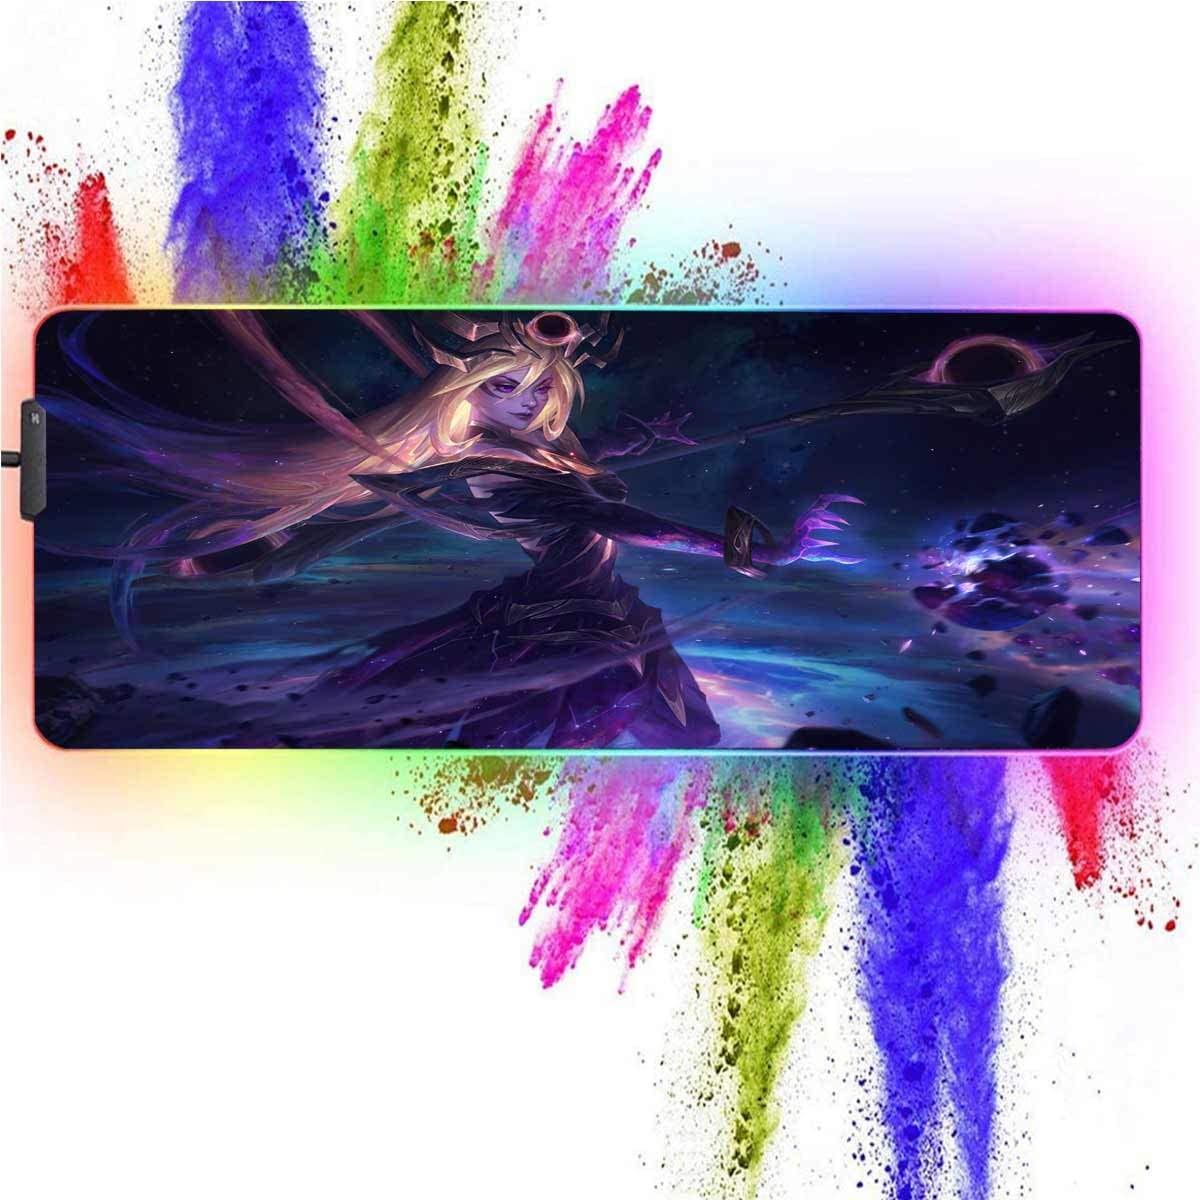 RGB Mouse Pad Large for League of Legends-Dak Cosmic Lux,12 Lighting Modes,Waterproof,Nonskid Rubber Base,Glowing Led Keyboard and Mouse Combo Mouse Mat,Desk Pad 15.7X35.4 Inch